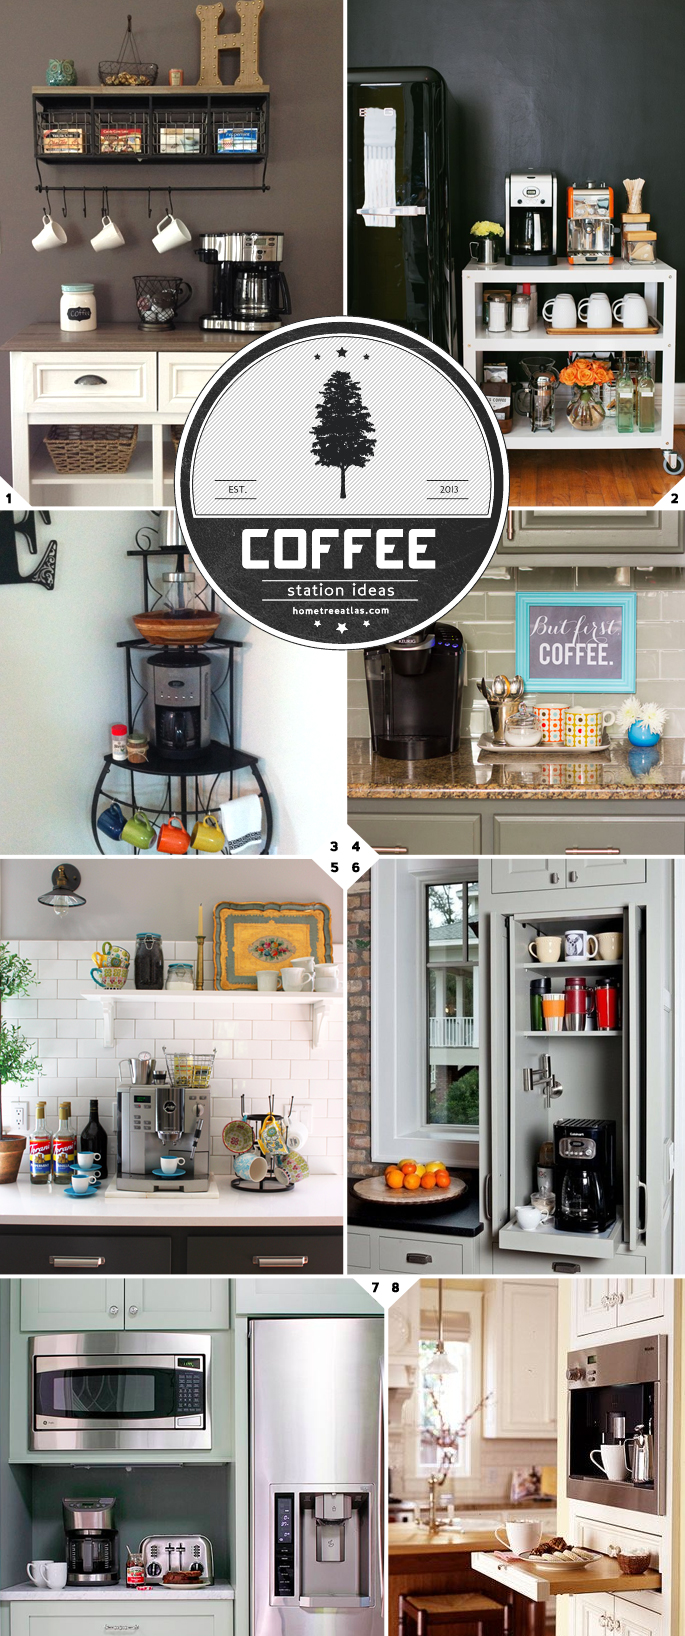 Home barista kitchen coffee station ideas and designs for Coffee station ideas for the home